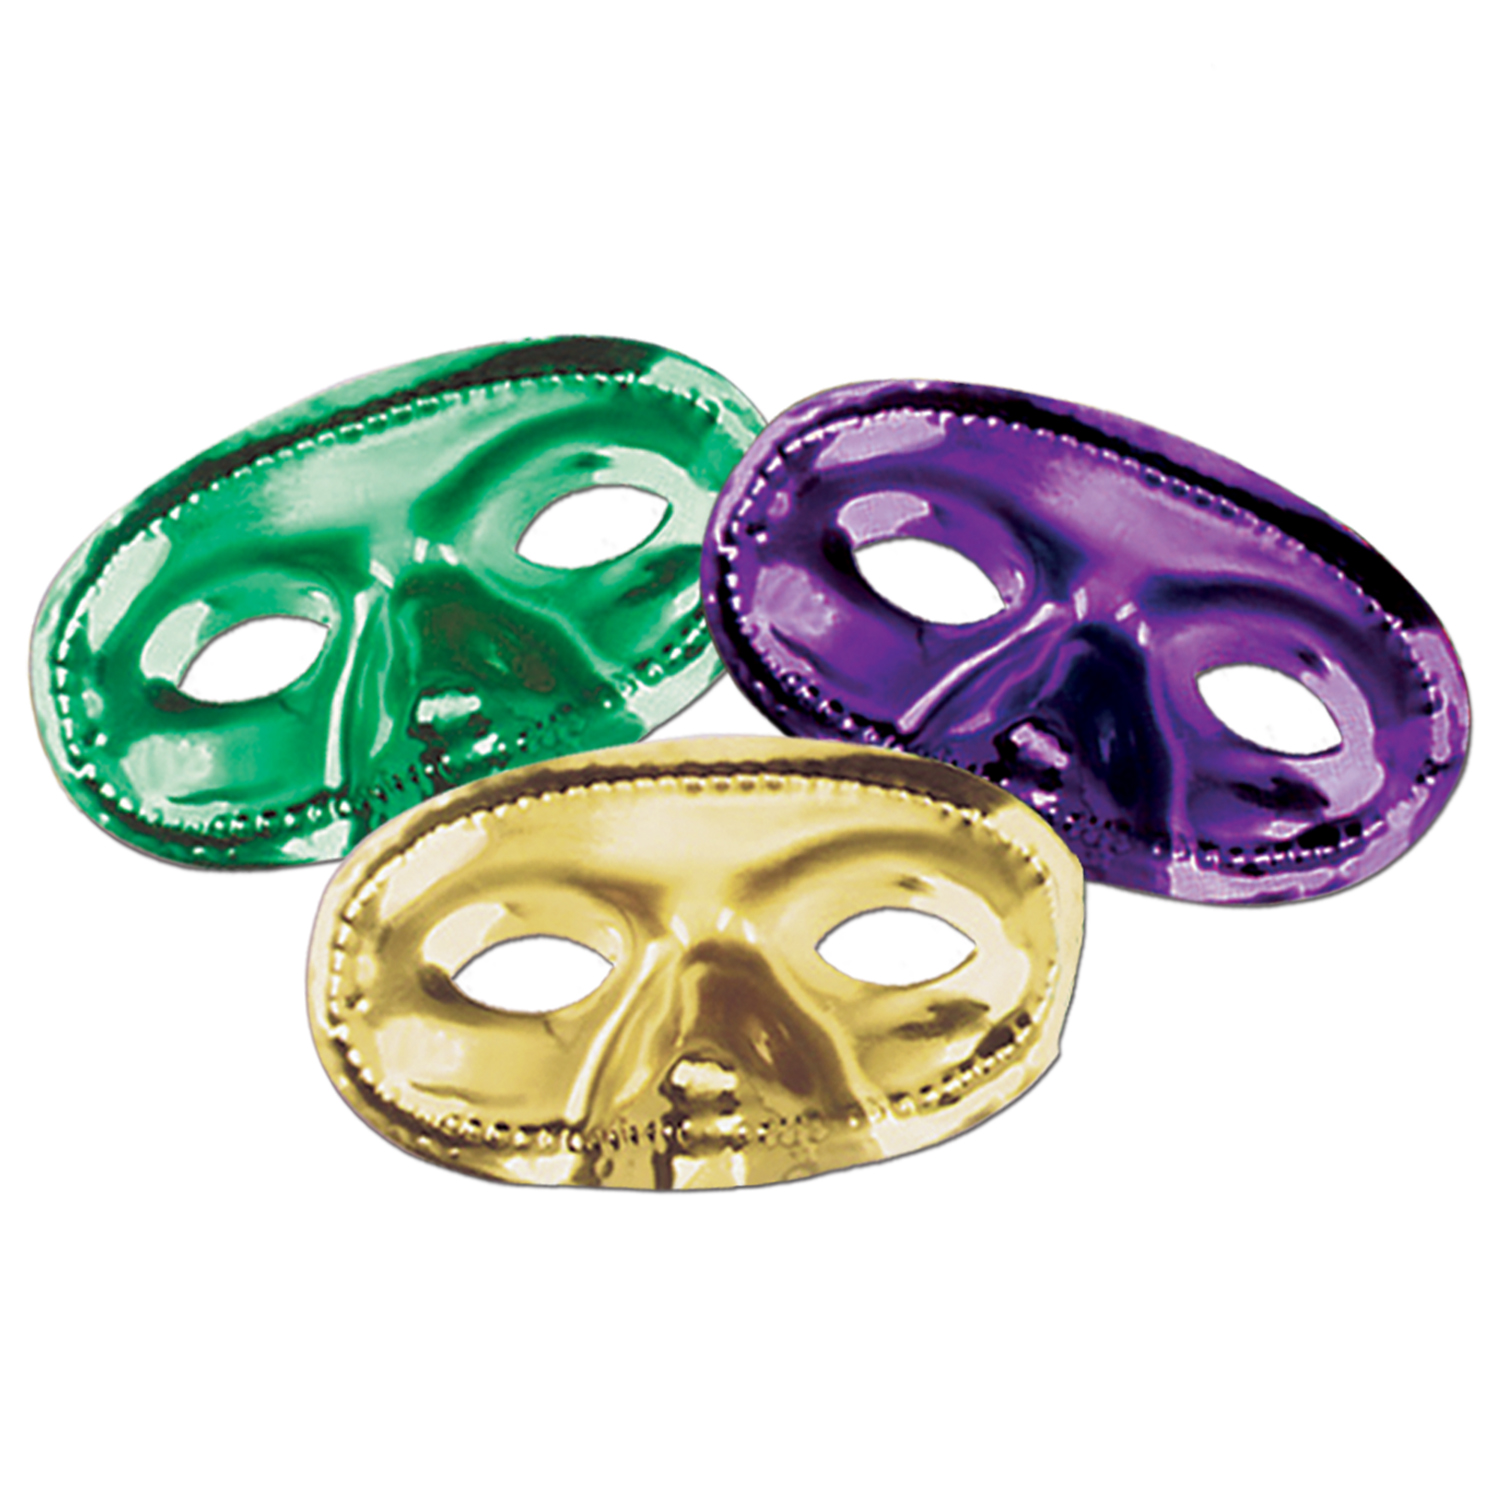 METALLIC HALF MASKS (24) image